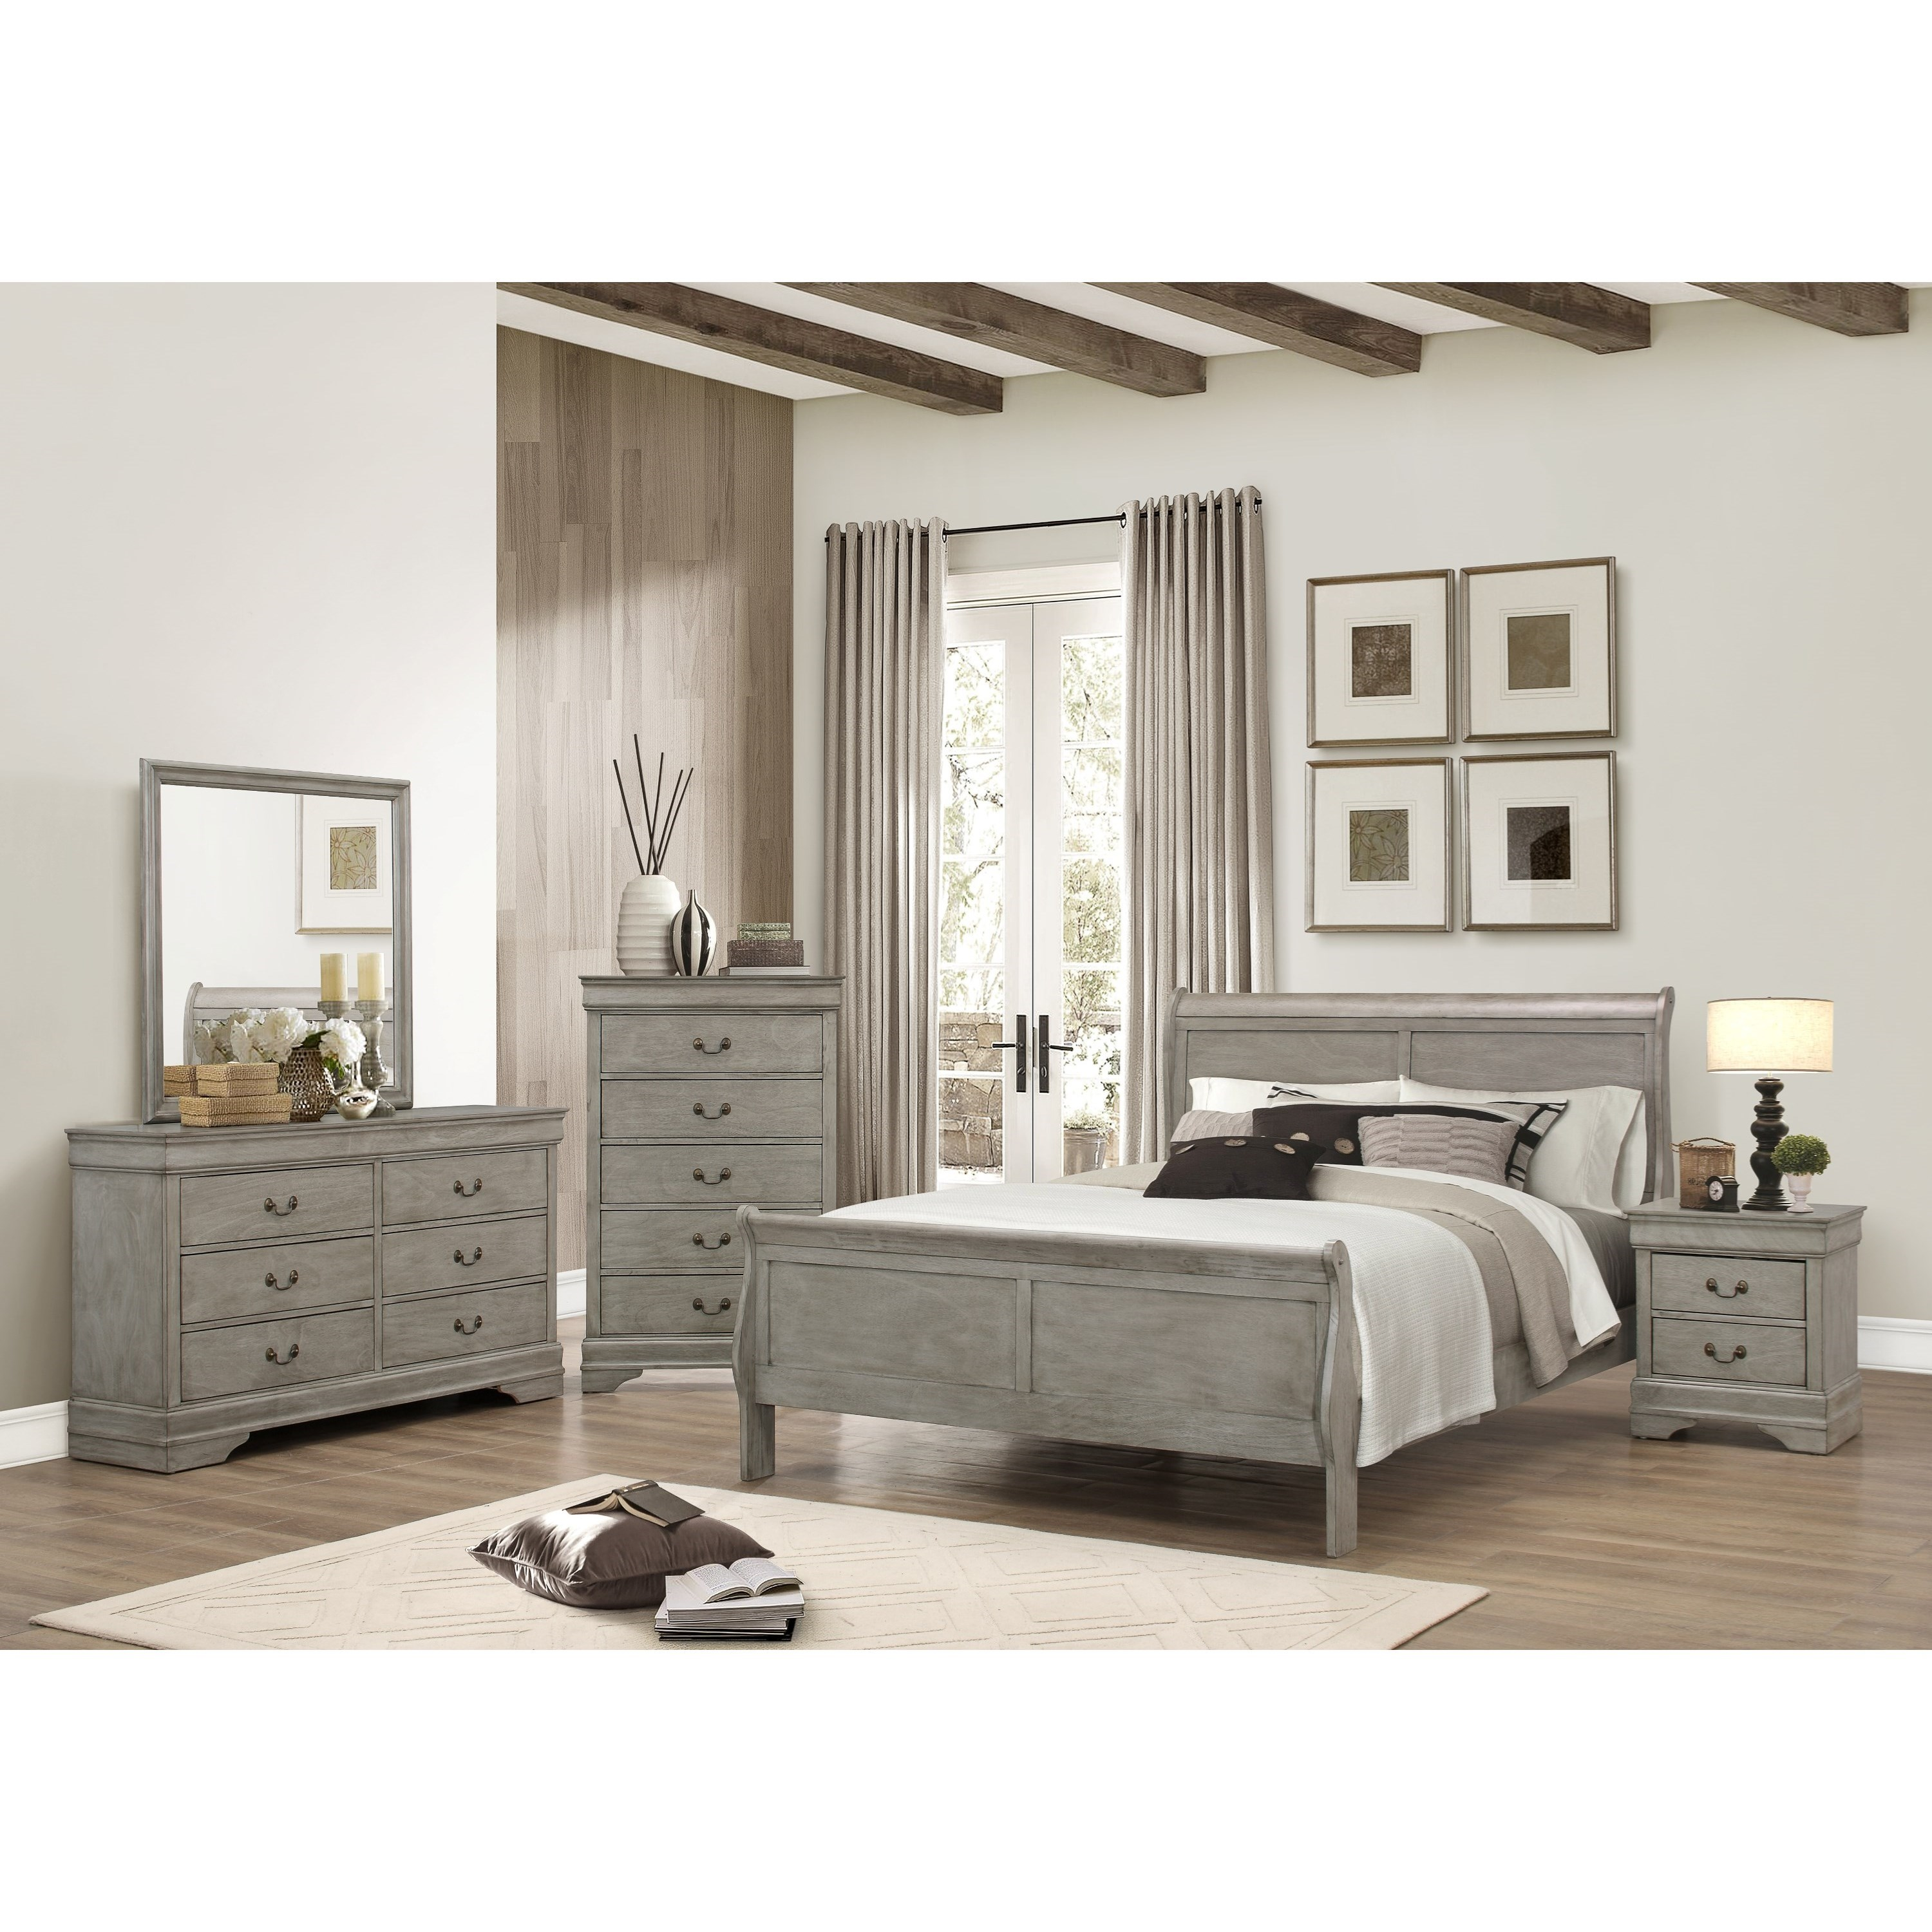 Crown Mark Louis Phillipe King Bedroom Group - Item Number: B3500 K Bedroom Group 1